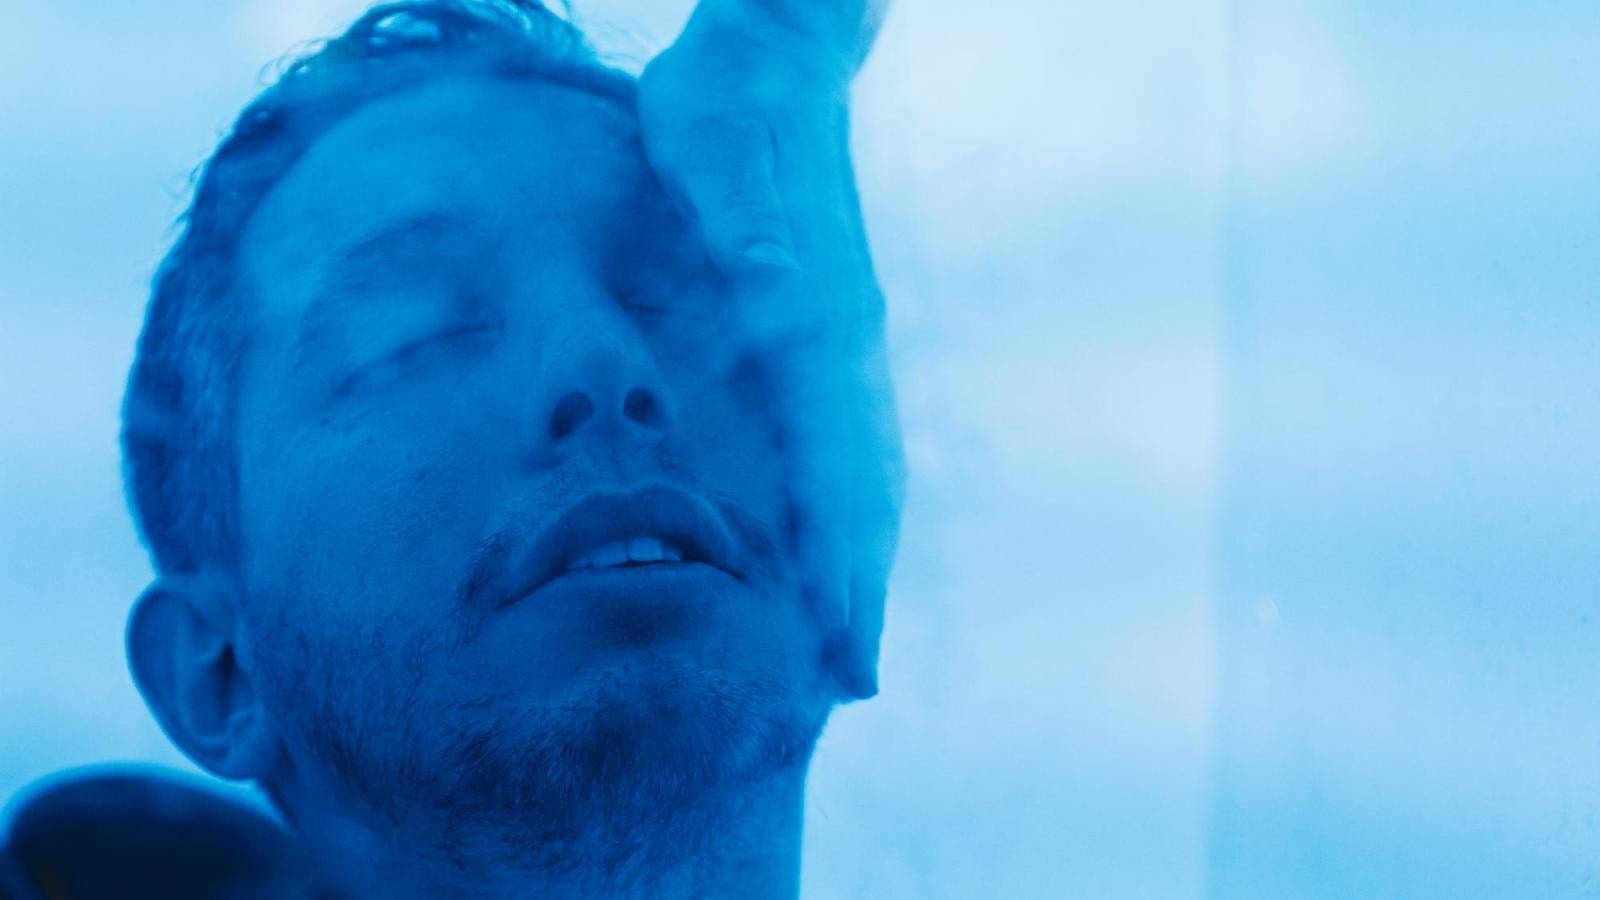 A person touches a man's face, and the man is shrouded in a blue haze